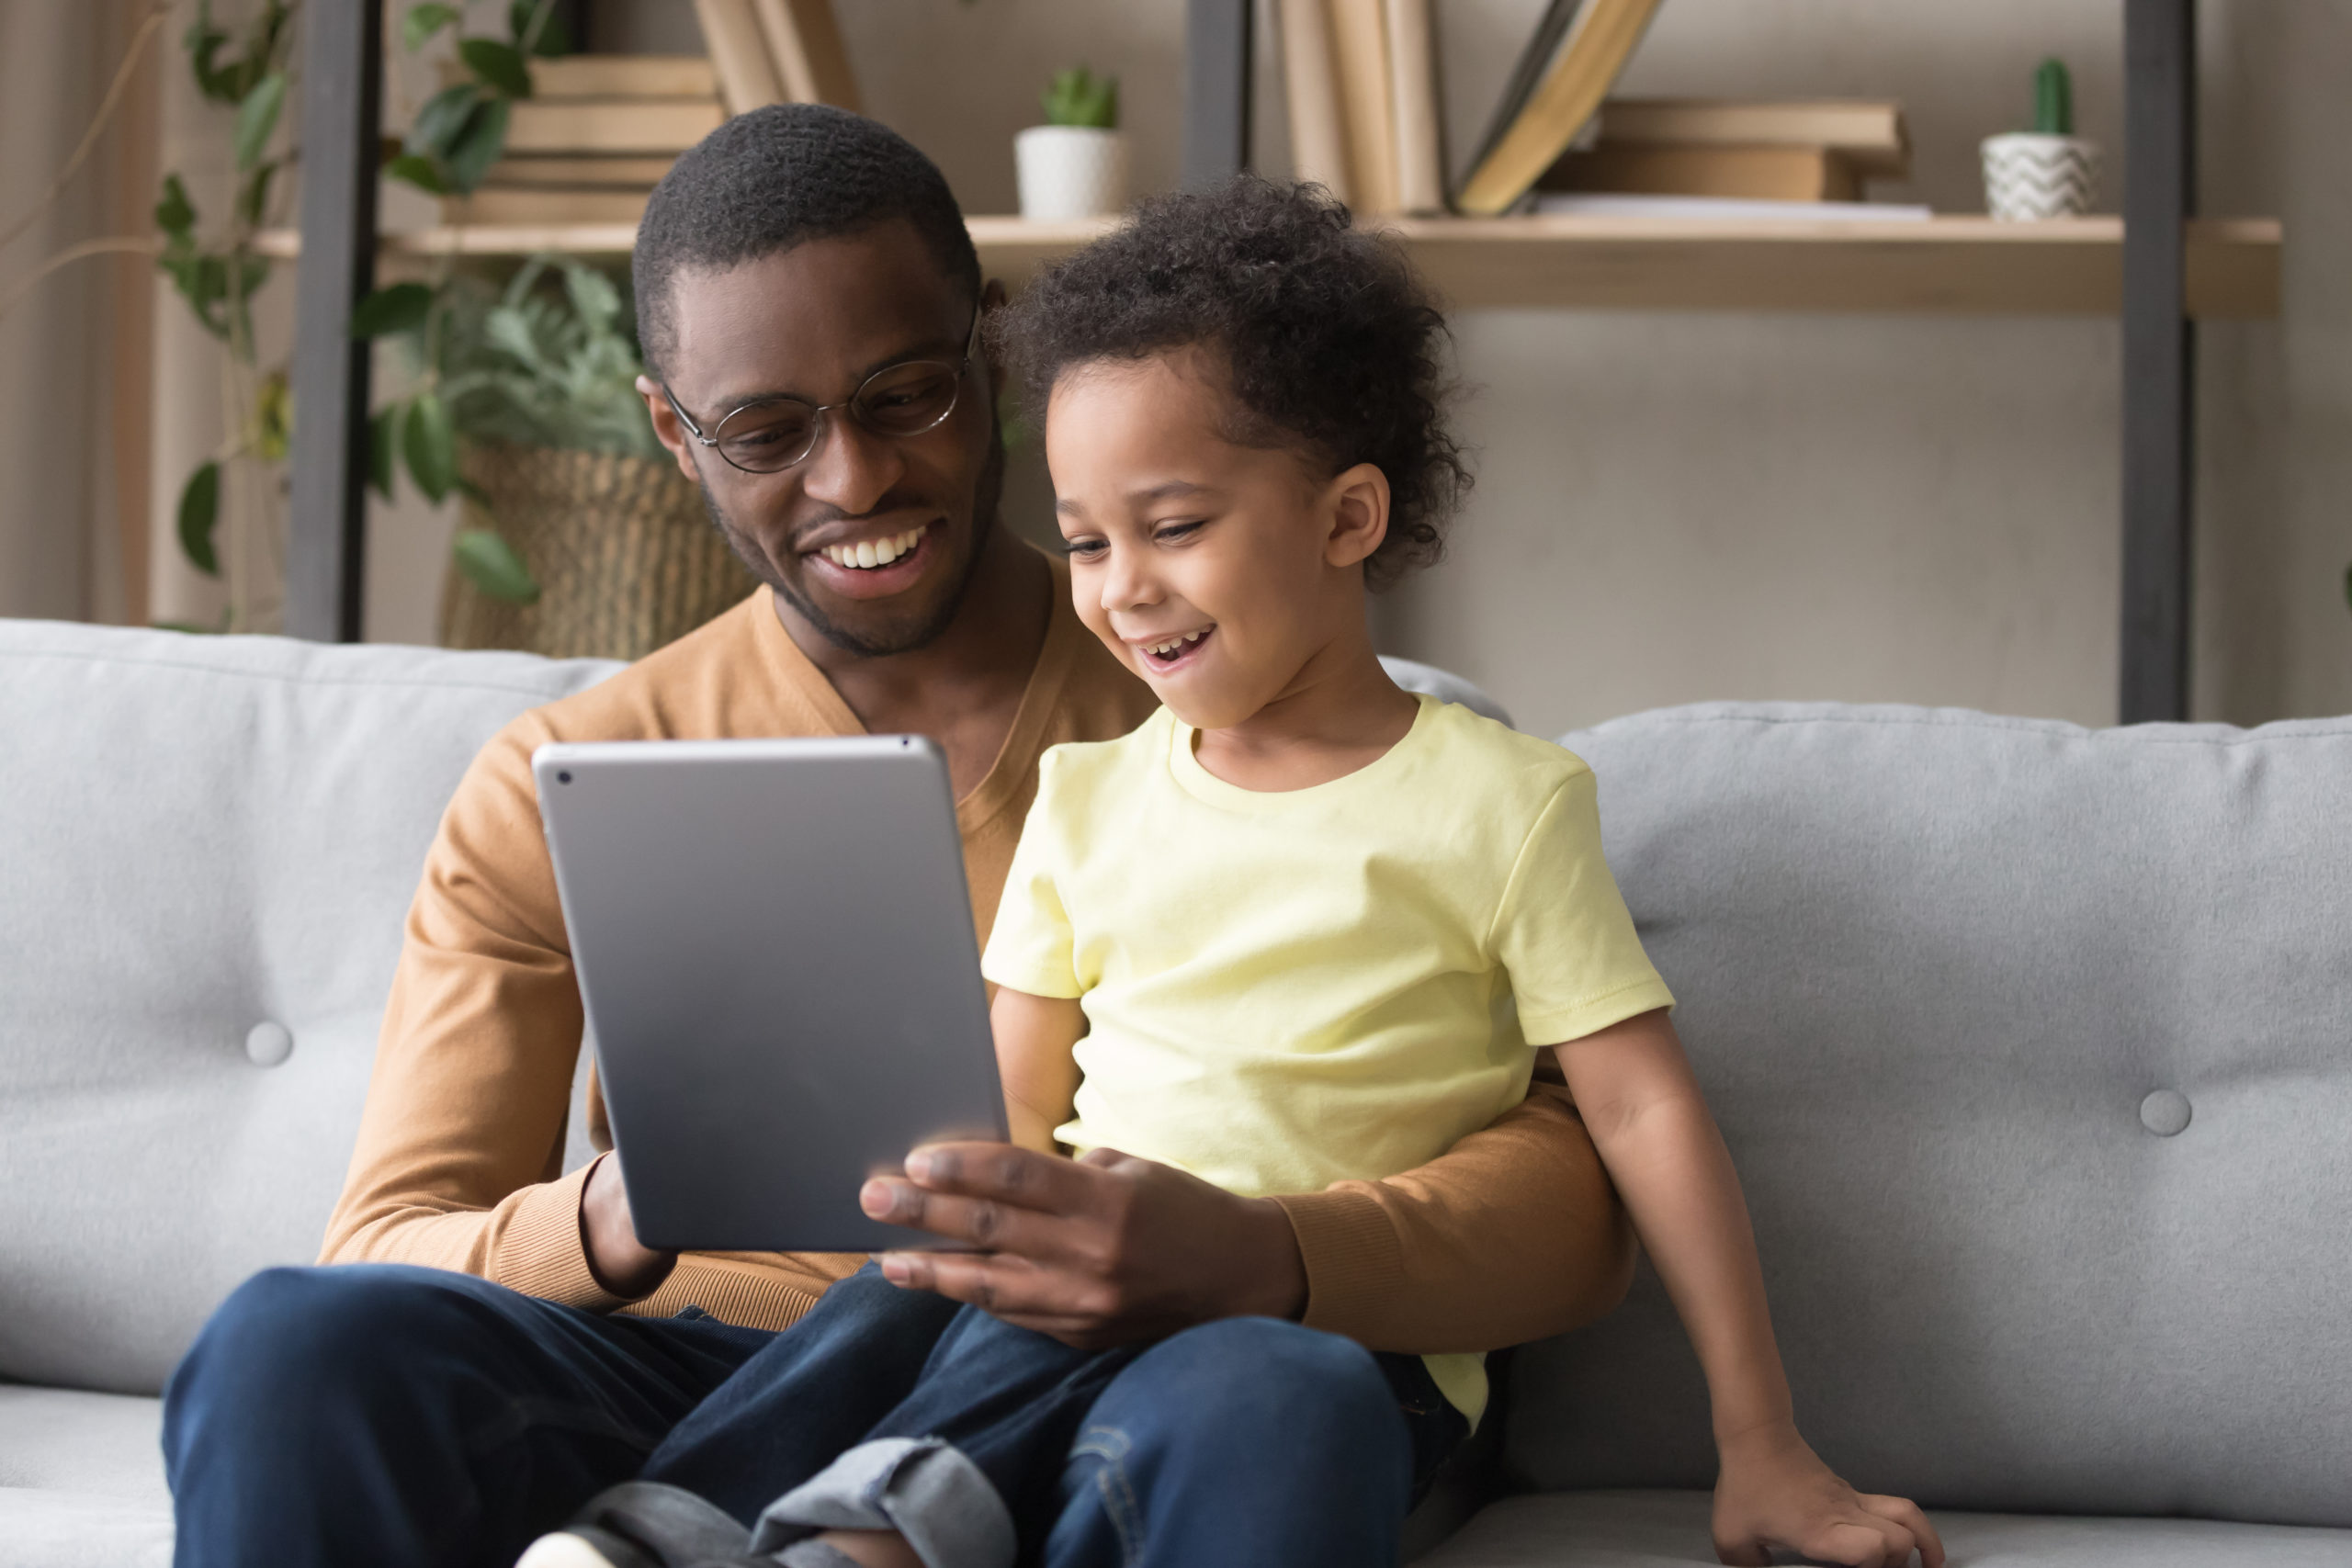 father and daughter sitting together on couch laughing at tablet screen